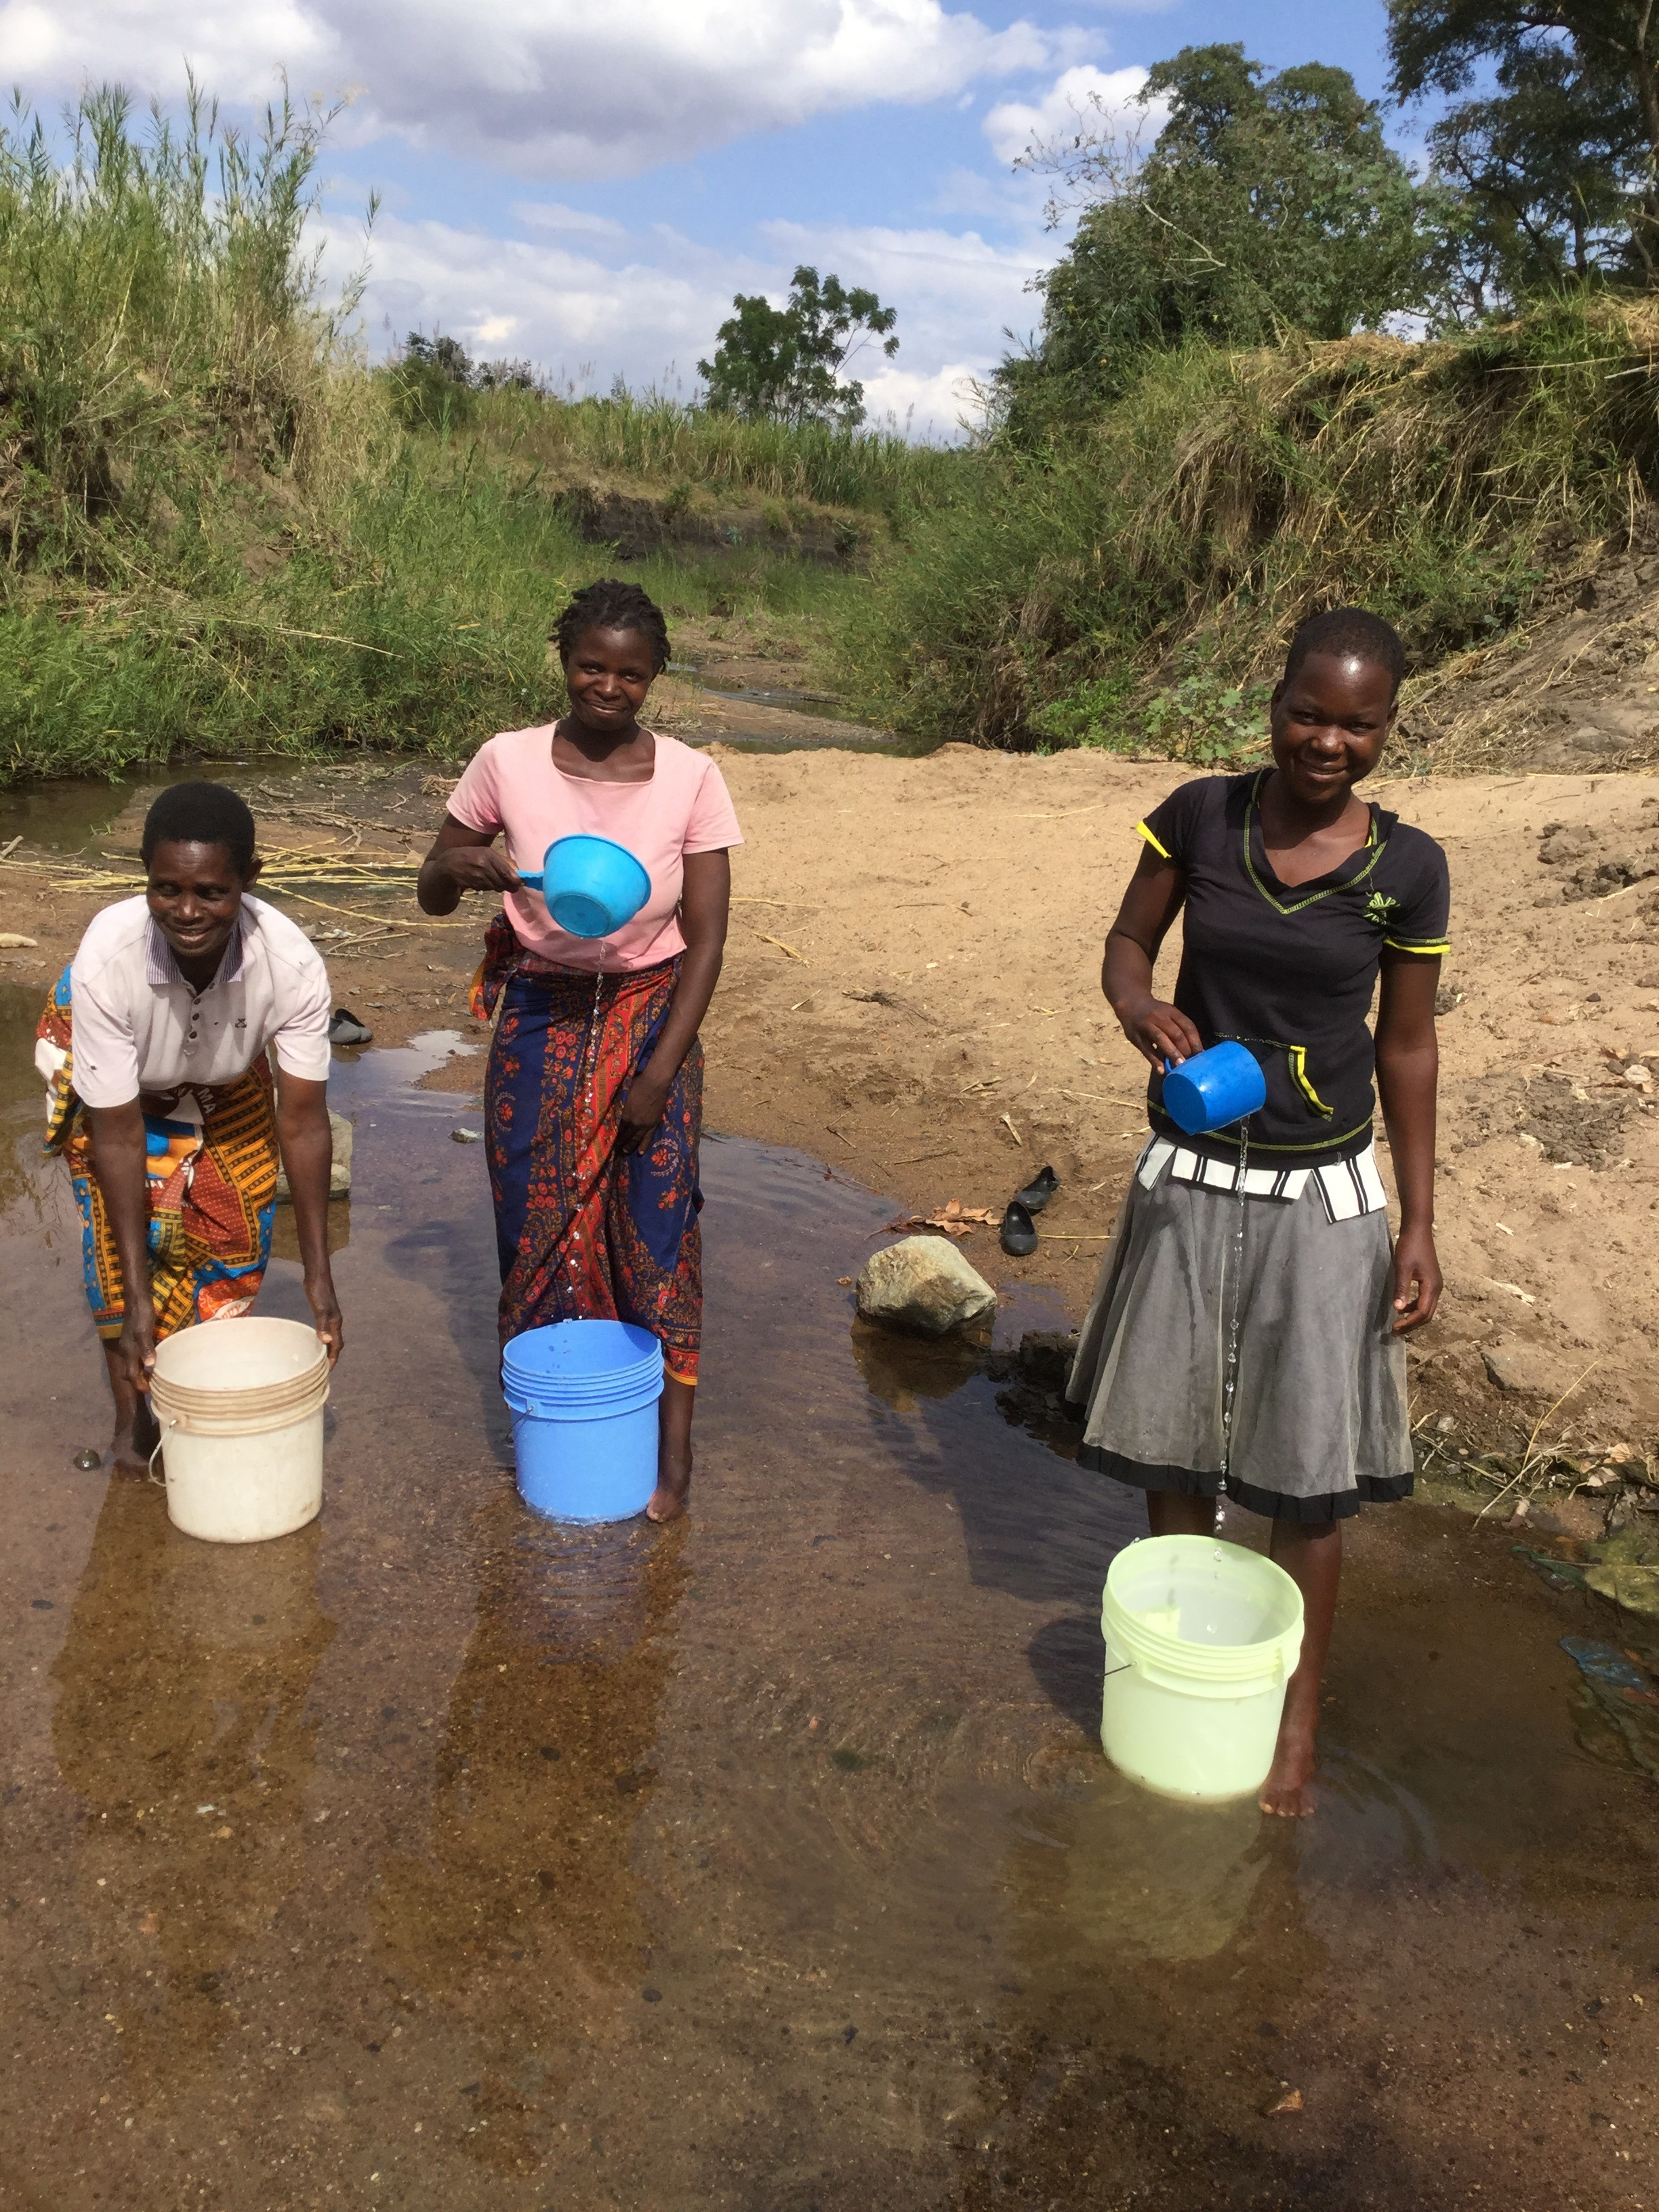 Image 3 Several Women at Water Source